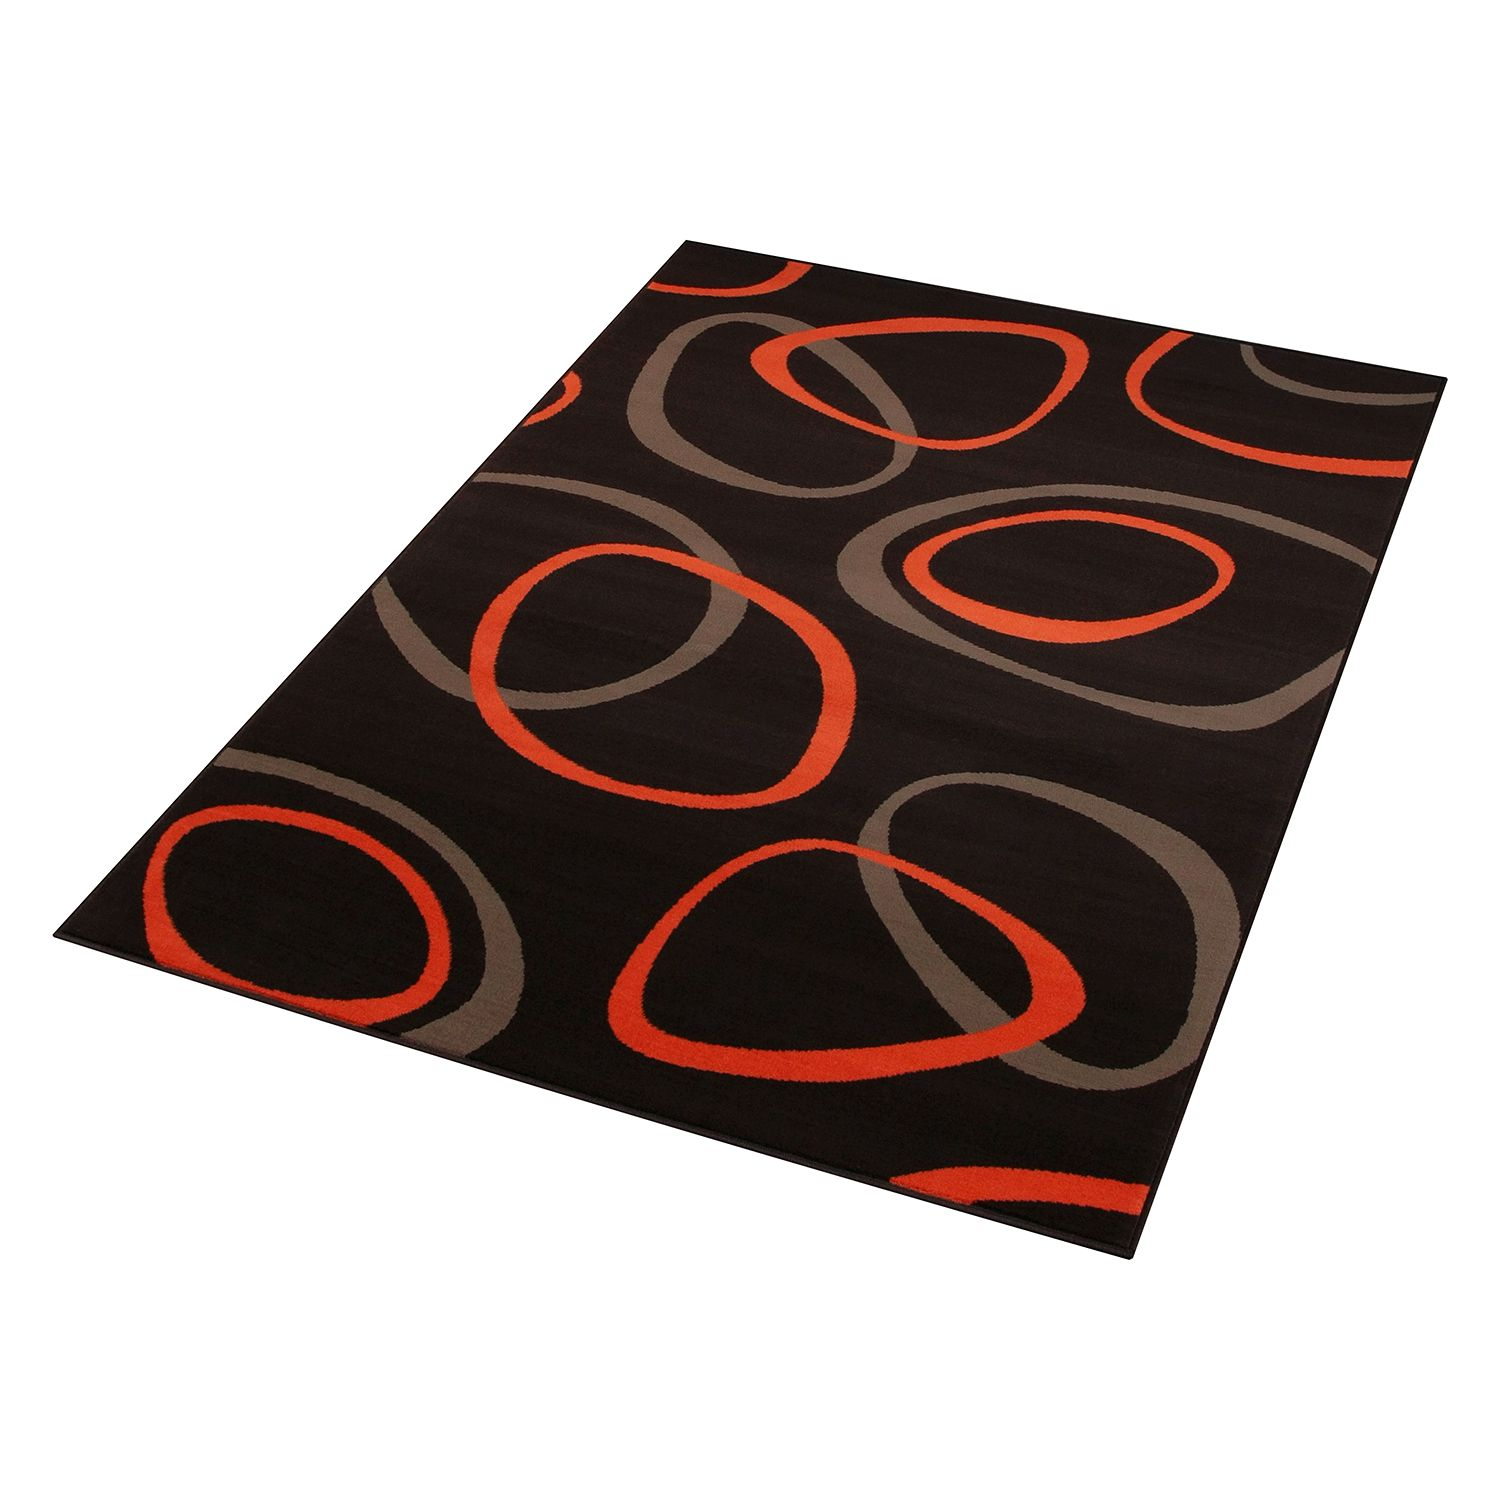 Teppich Loop - Braun / Orange - 80 x 150 cm, Hanse Home Collection